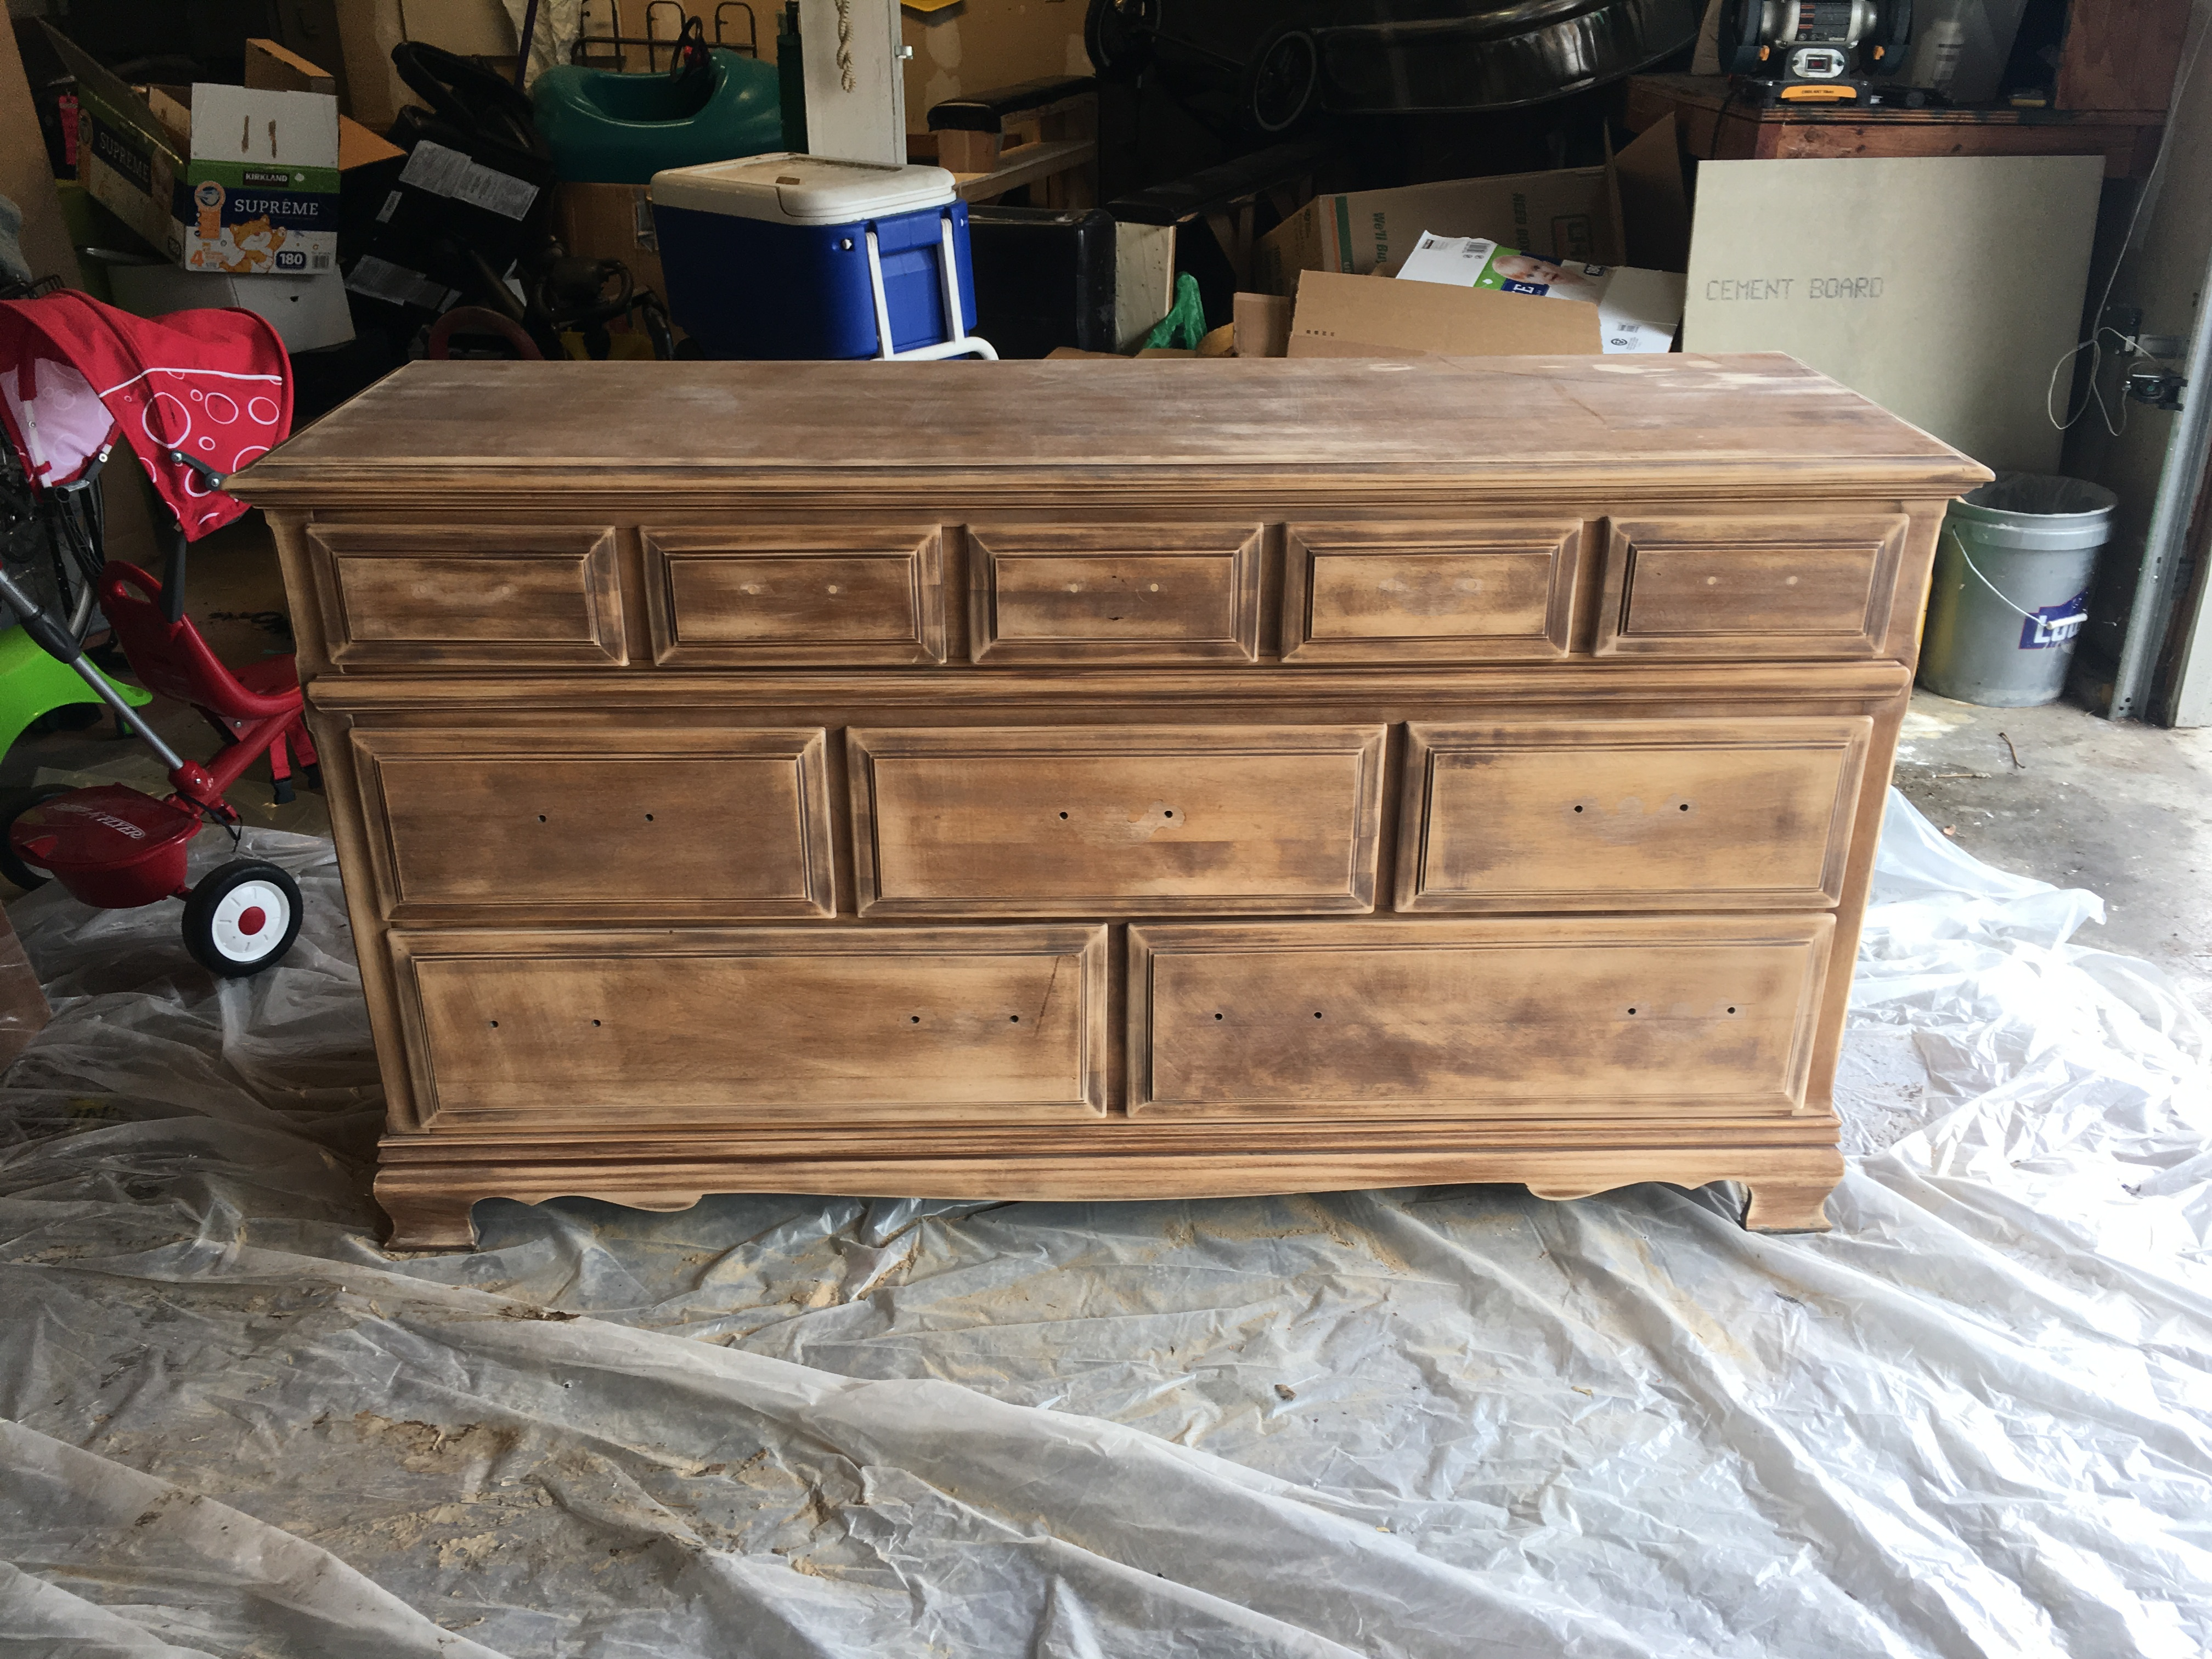 I Also Used Wood Filler To Fill The Holes On Top 5 Drawers Since Was Going Replace 2 Hole Drawer Pulls With A Round Center Pull